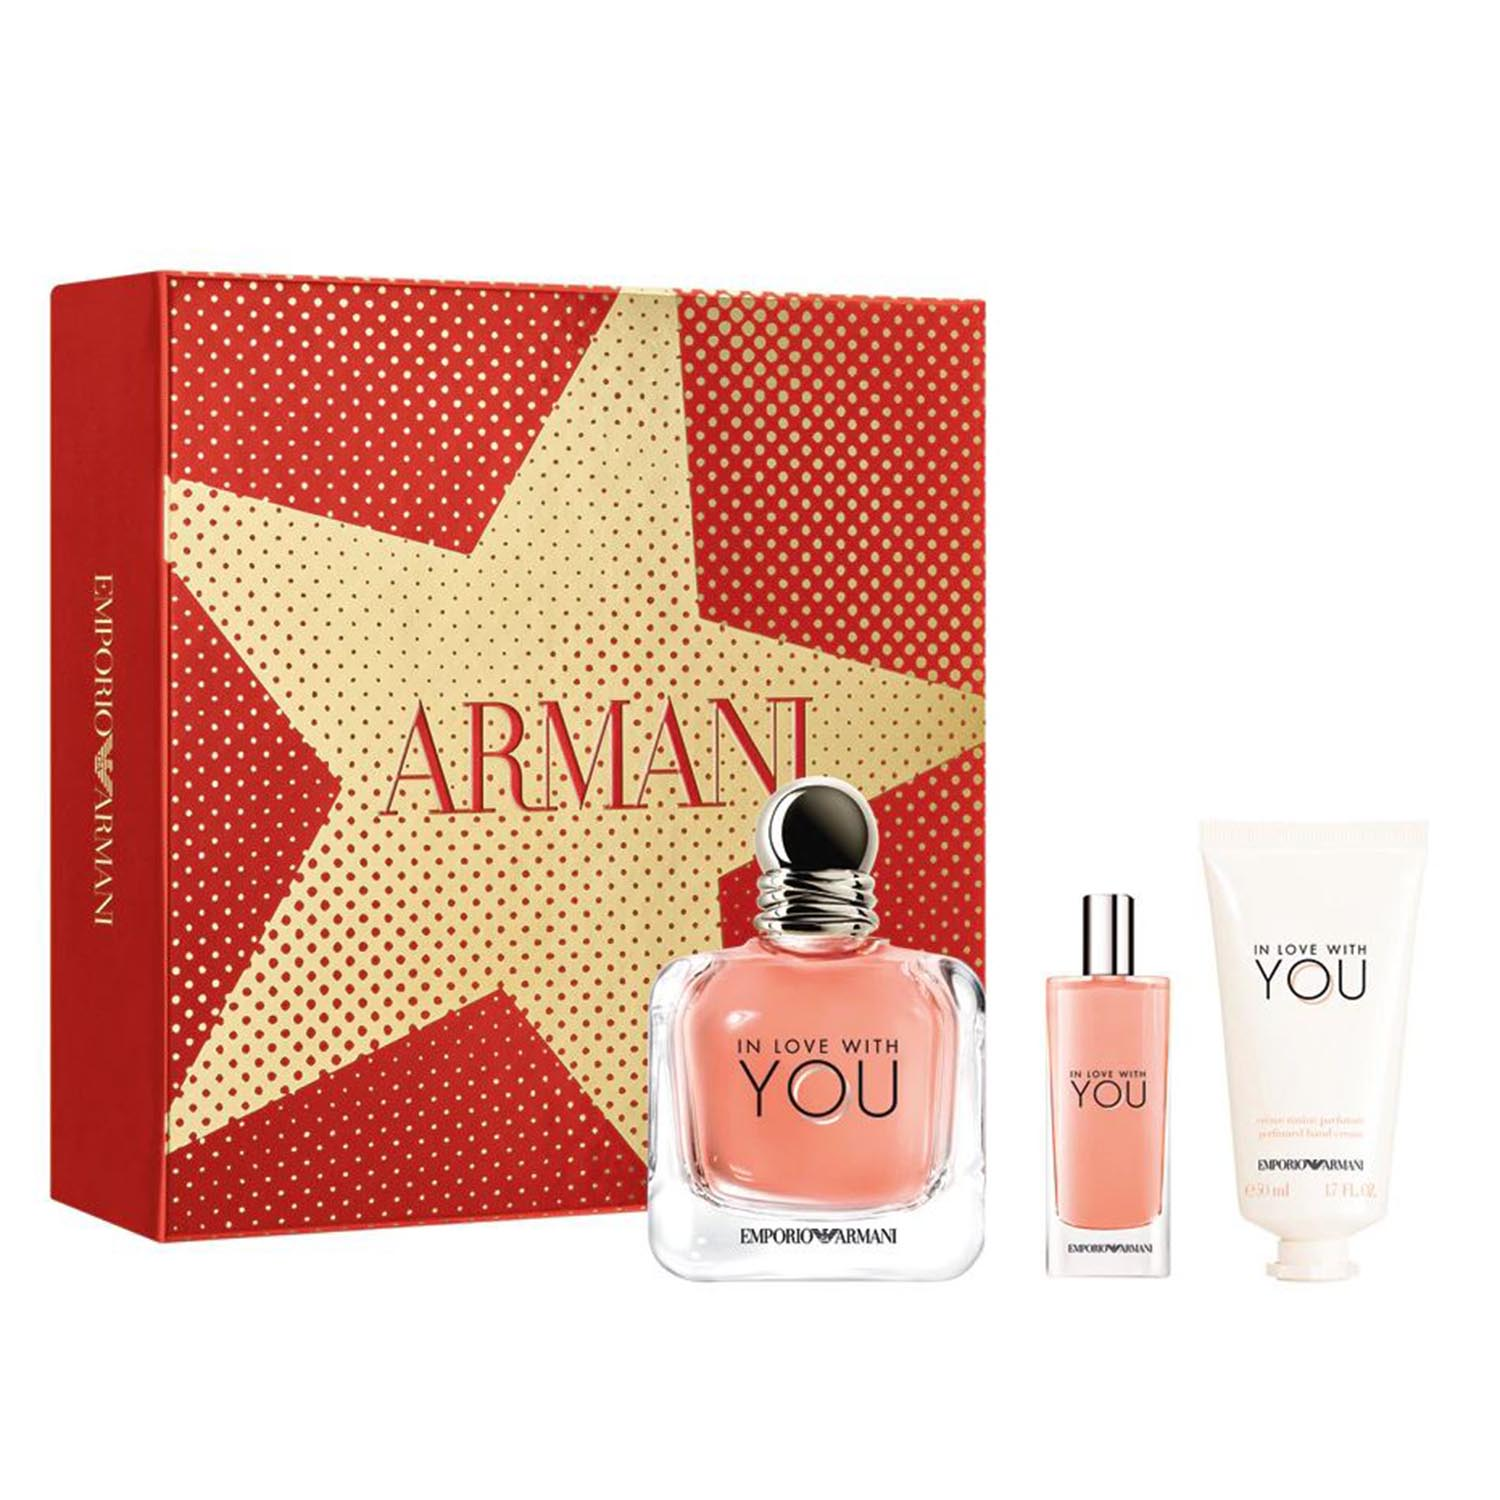 Giorgio armani armani you for her eau de toilette 100ml eau de toilette 15ml vaporizador body cream 50ml